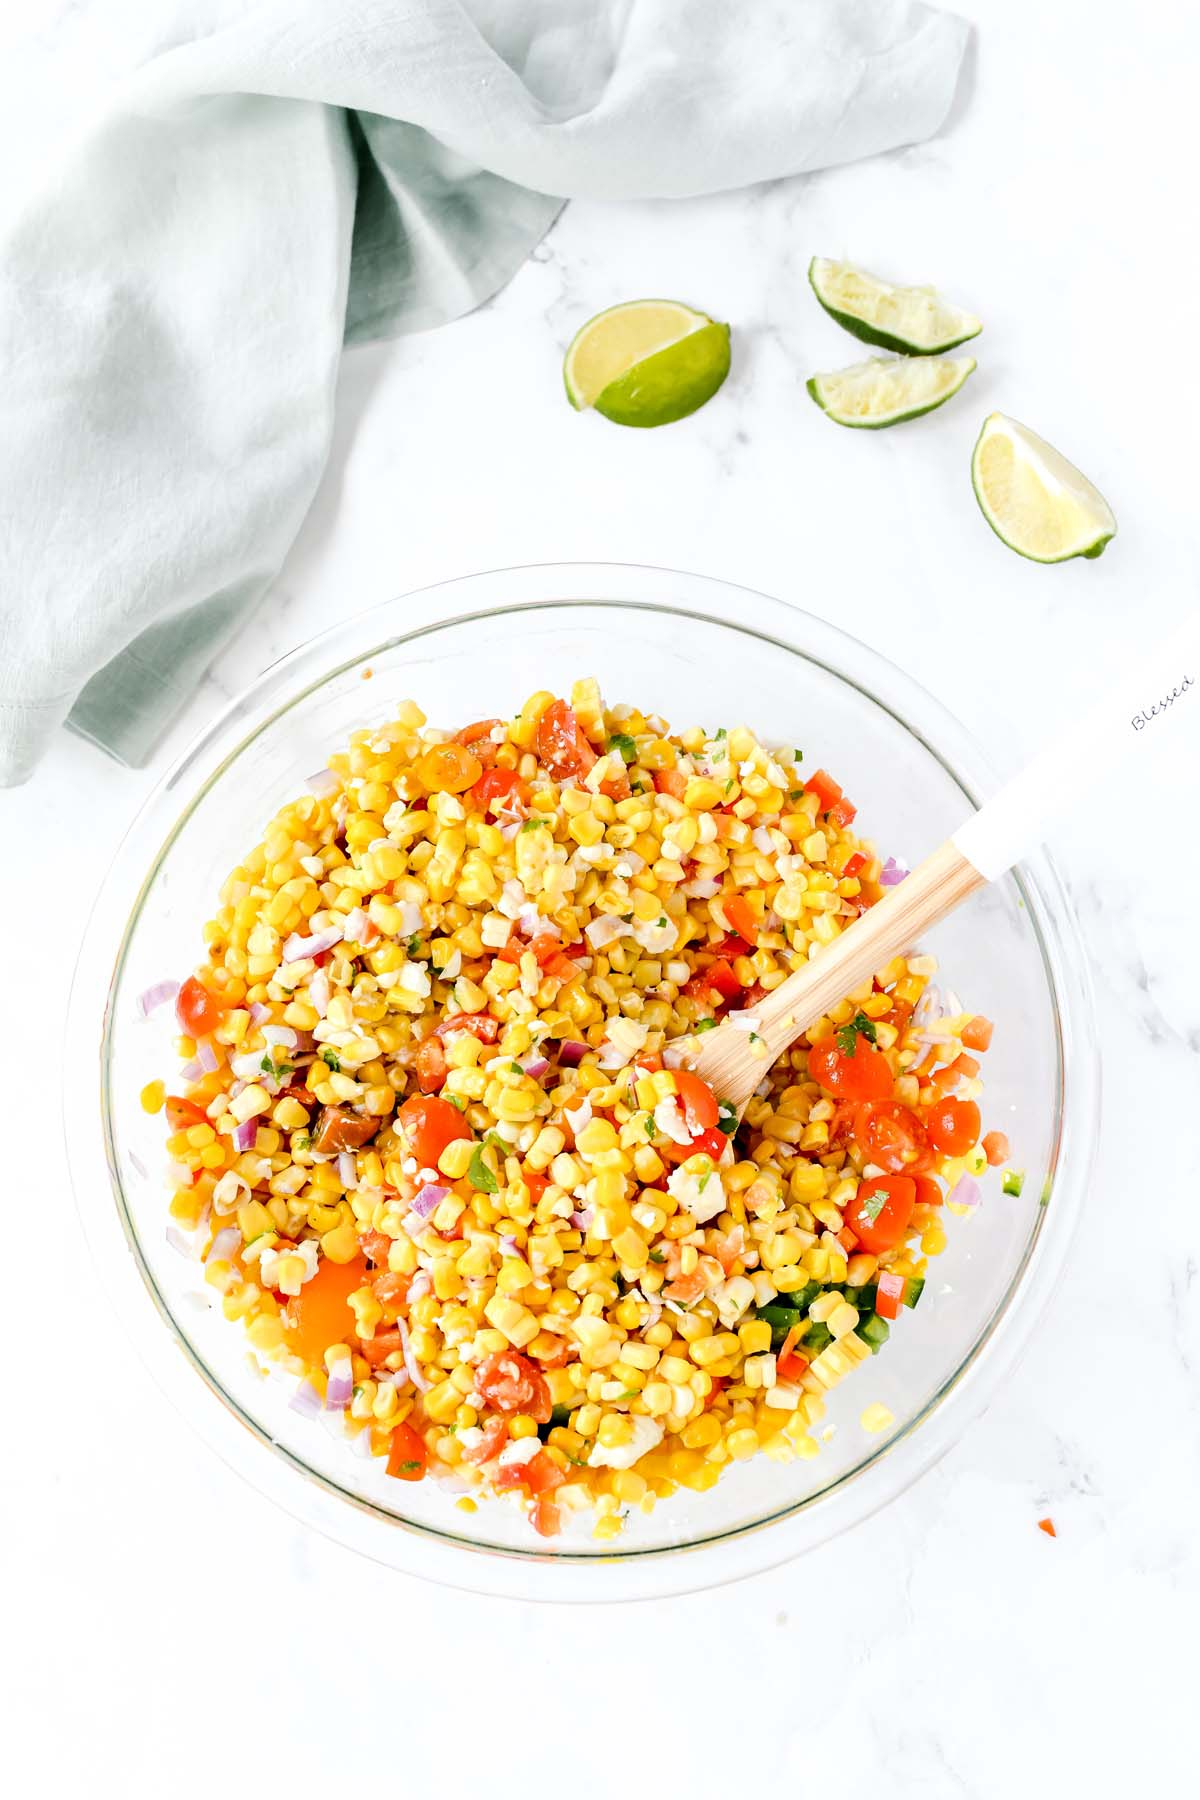 Corn salad with feta and lime wedges on a white table.